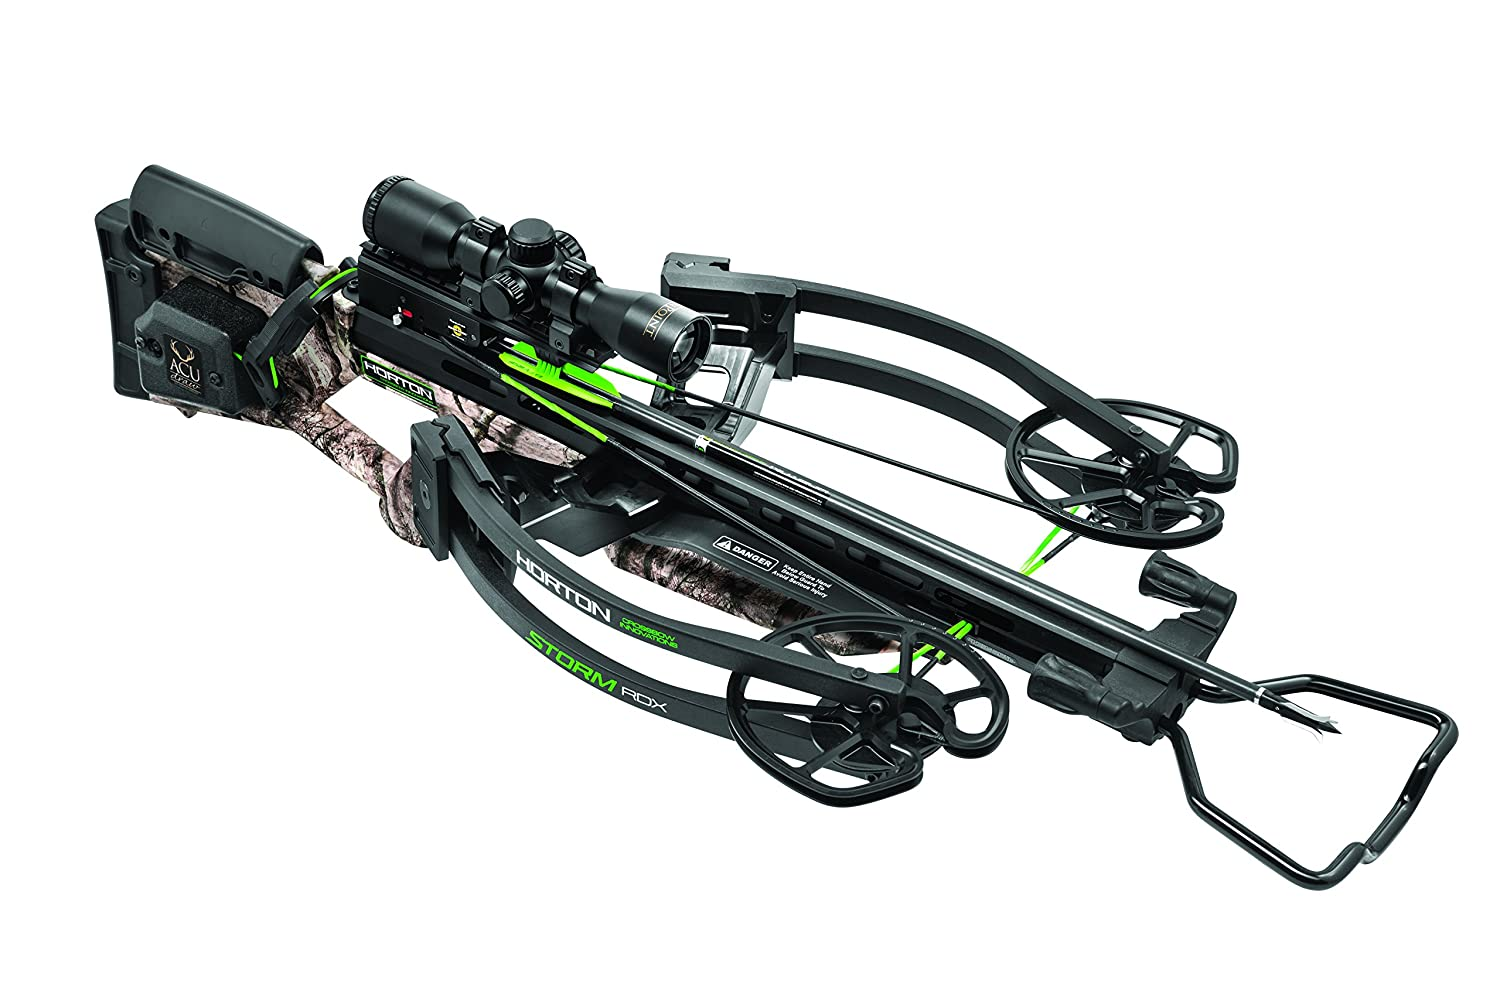 Horton Crossbow Innovations Storm RDX Premium Package With ACUdraw, One Size, Mossy Oak Treestand/Black